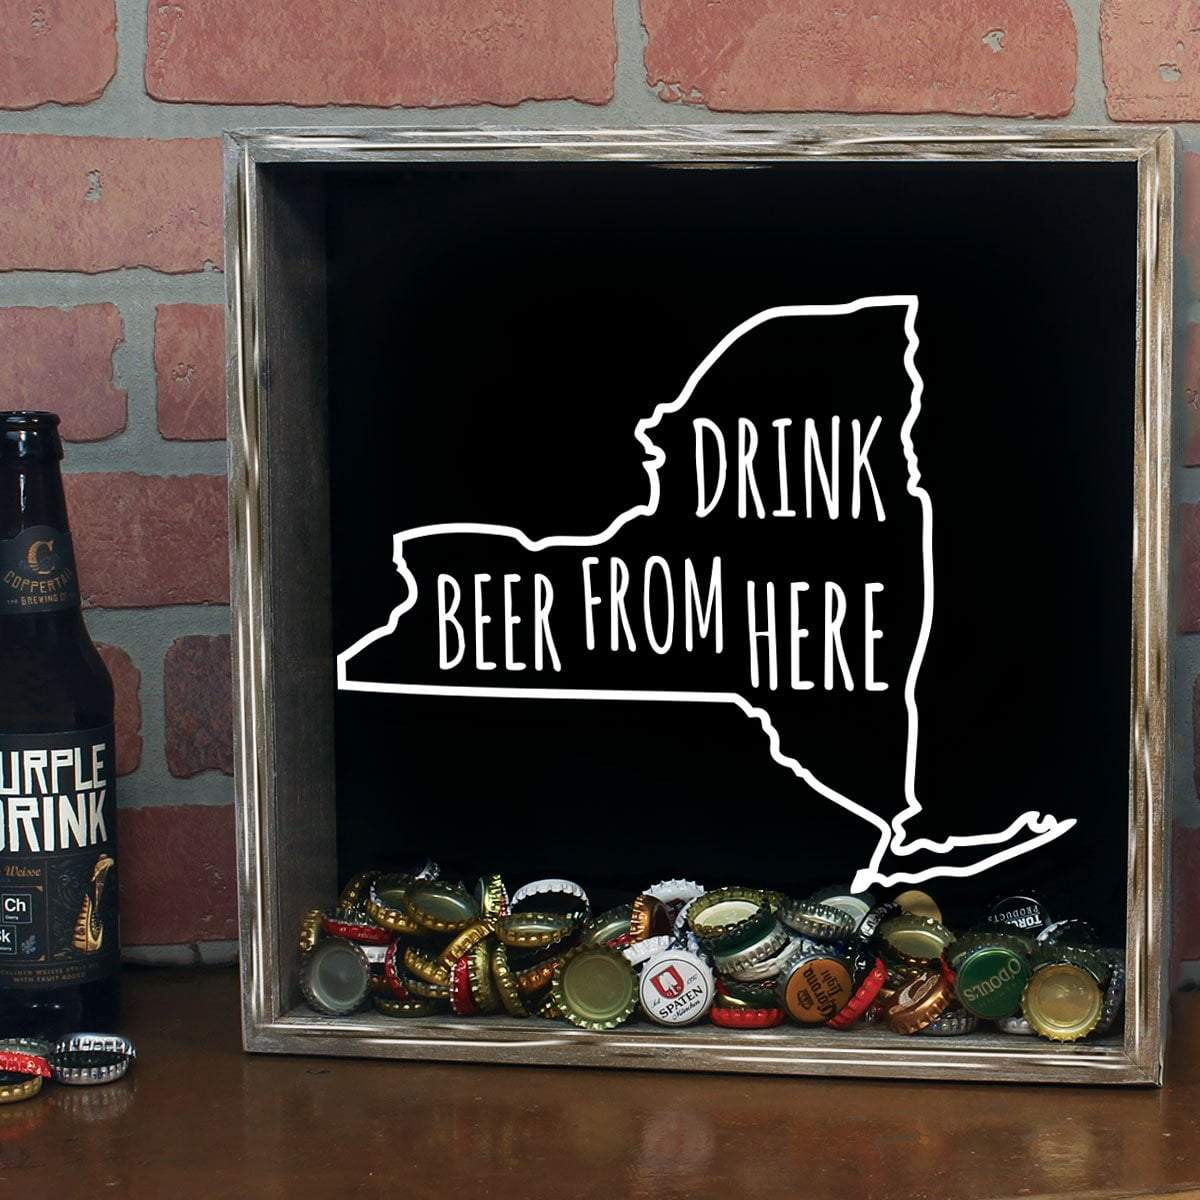 New York Drink Beer From Here Beer Cap Shadow Box